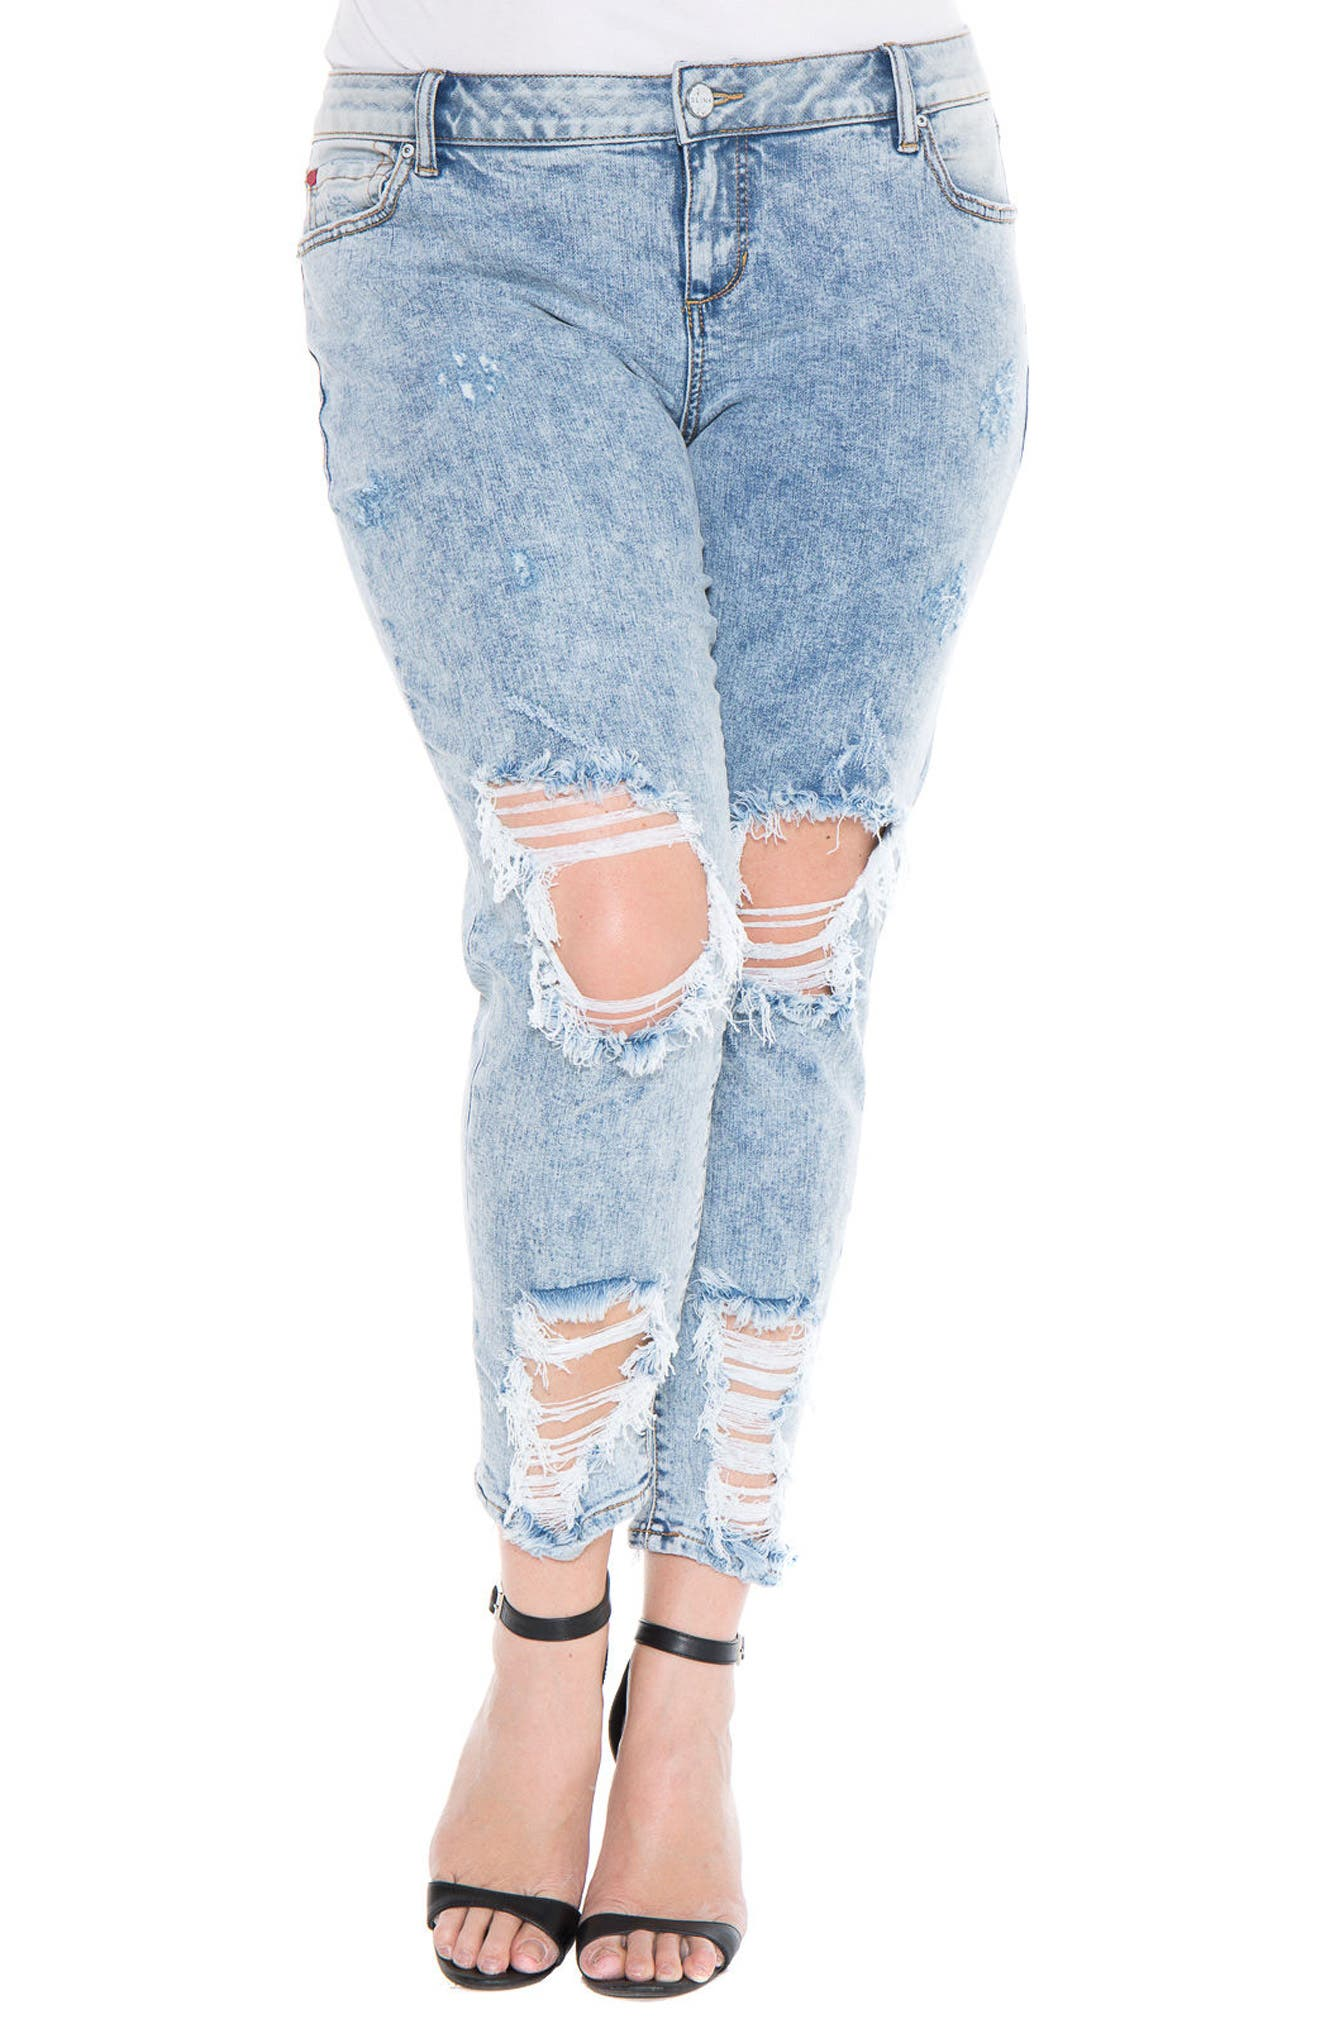 Alternate Image 1 Selected - SLINK Jeans Destroyed Boyfriend Jeans (Amelia) (Plus Size)